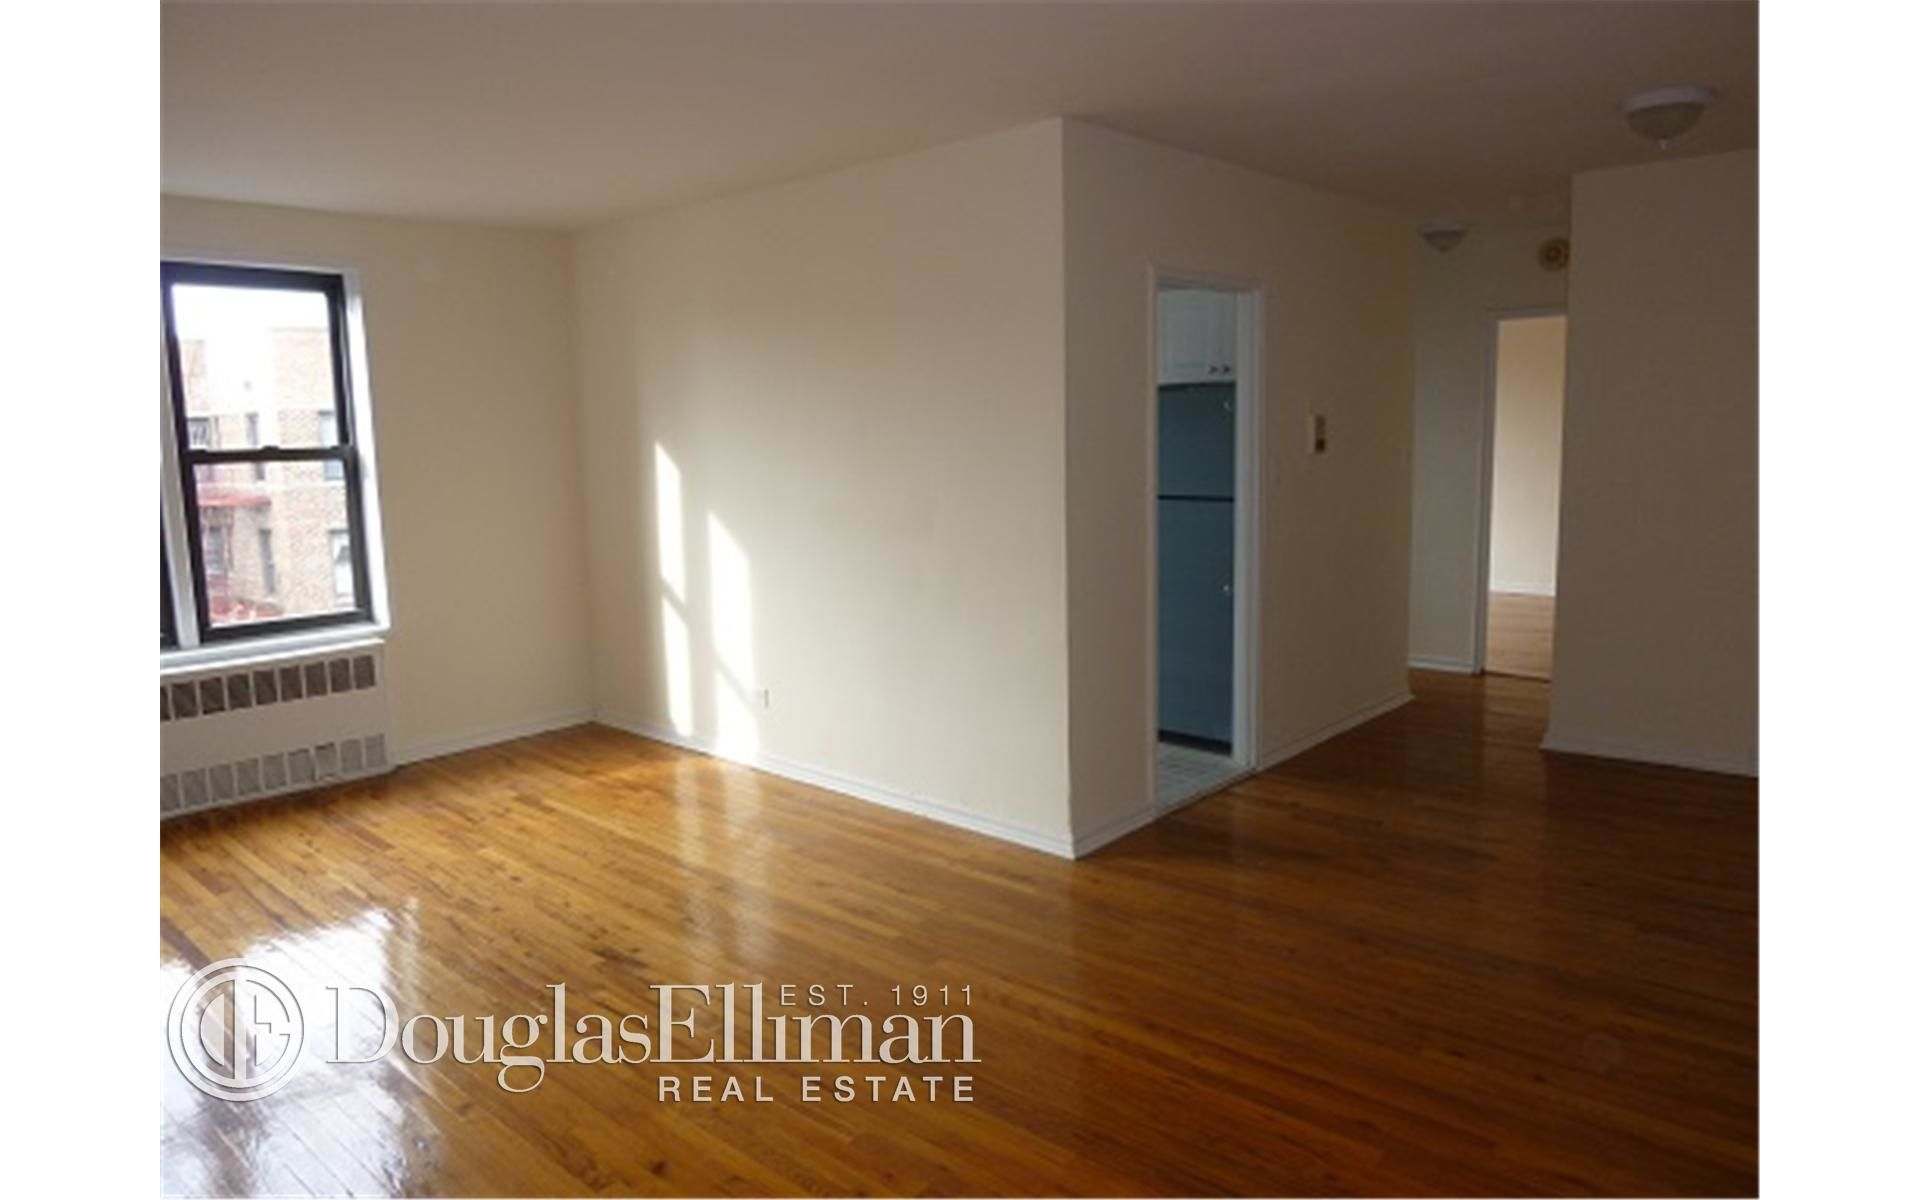 285 E 35th St, APT 7F Photo 4 - ELLIMAN-2322830